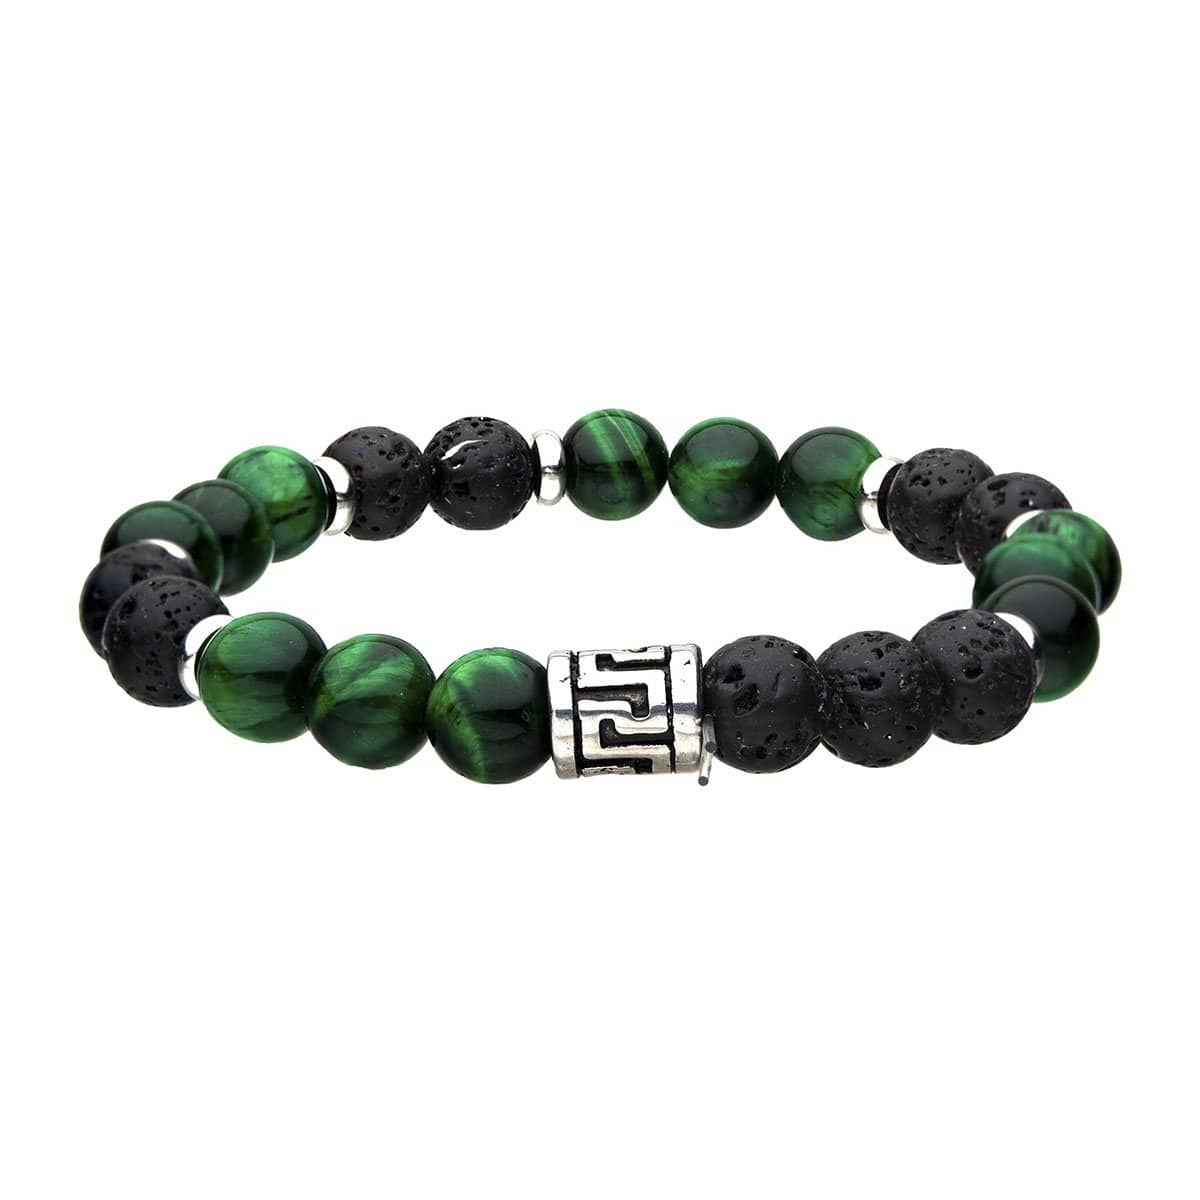 Silver Stainless Steel with Green Tiger's Eye & Black Molten Lava Bead Expandable Bracelet